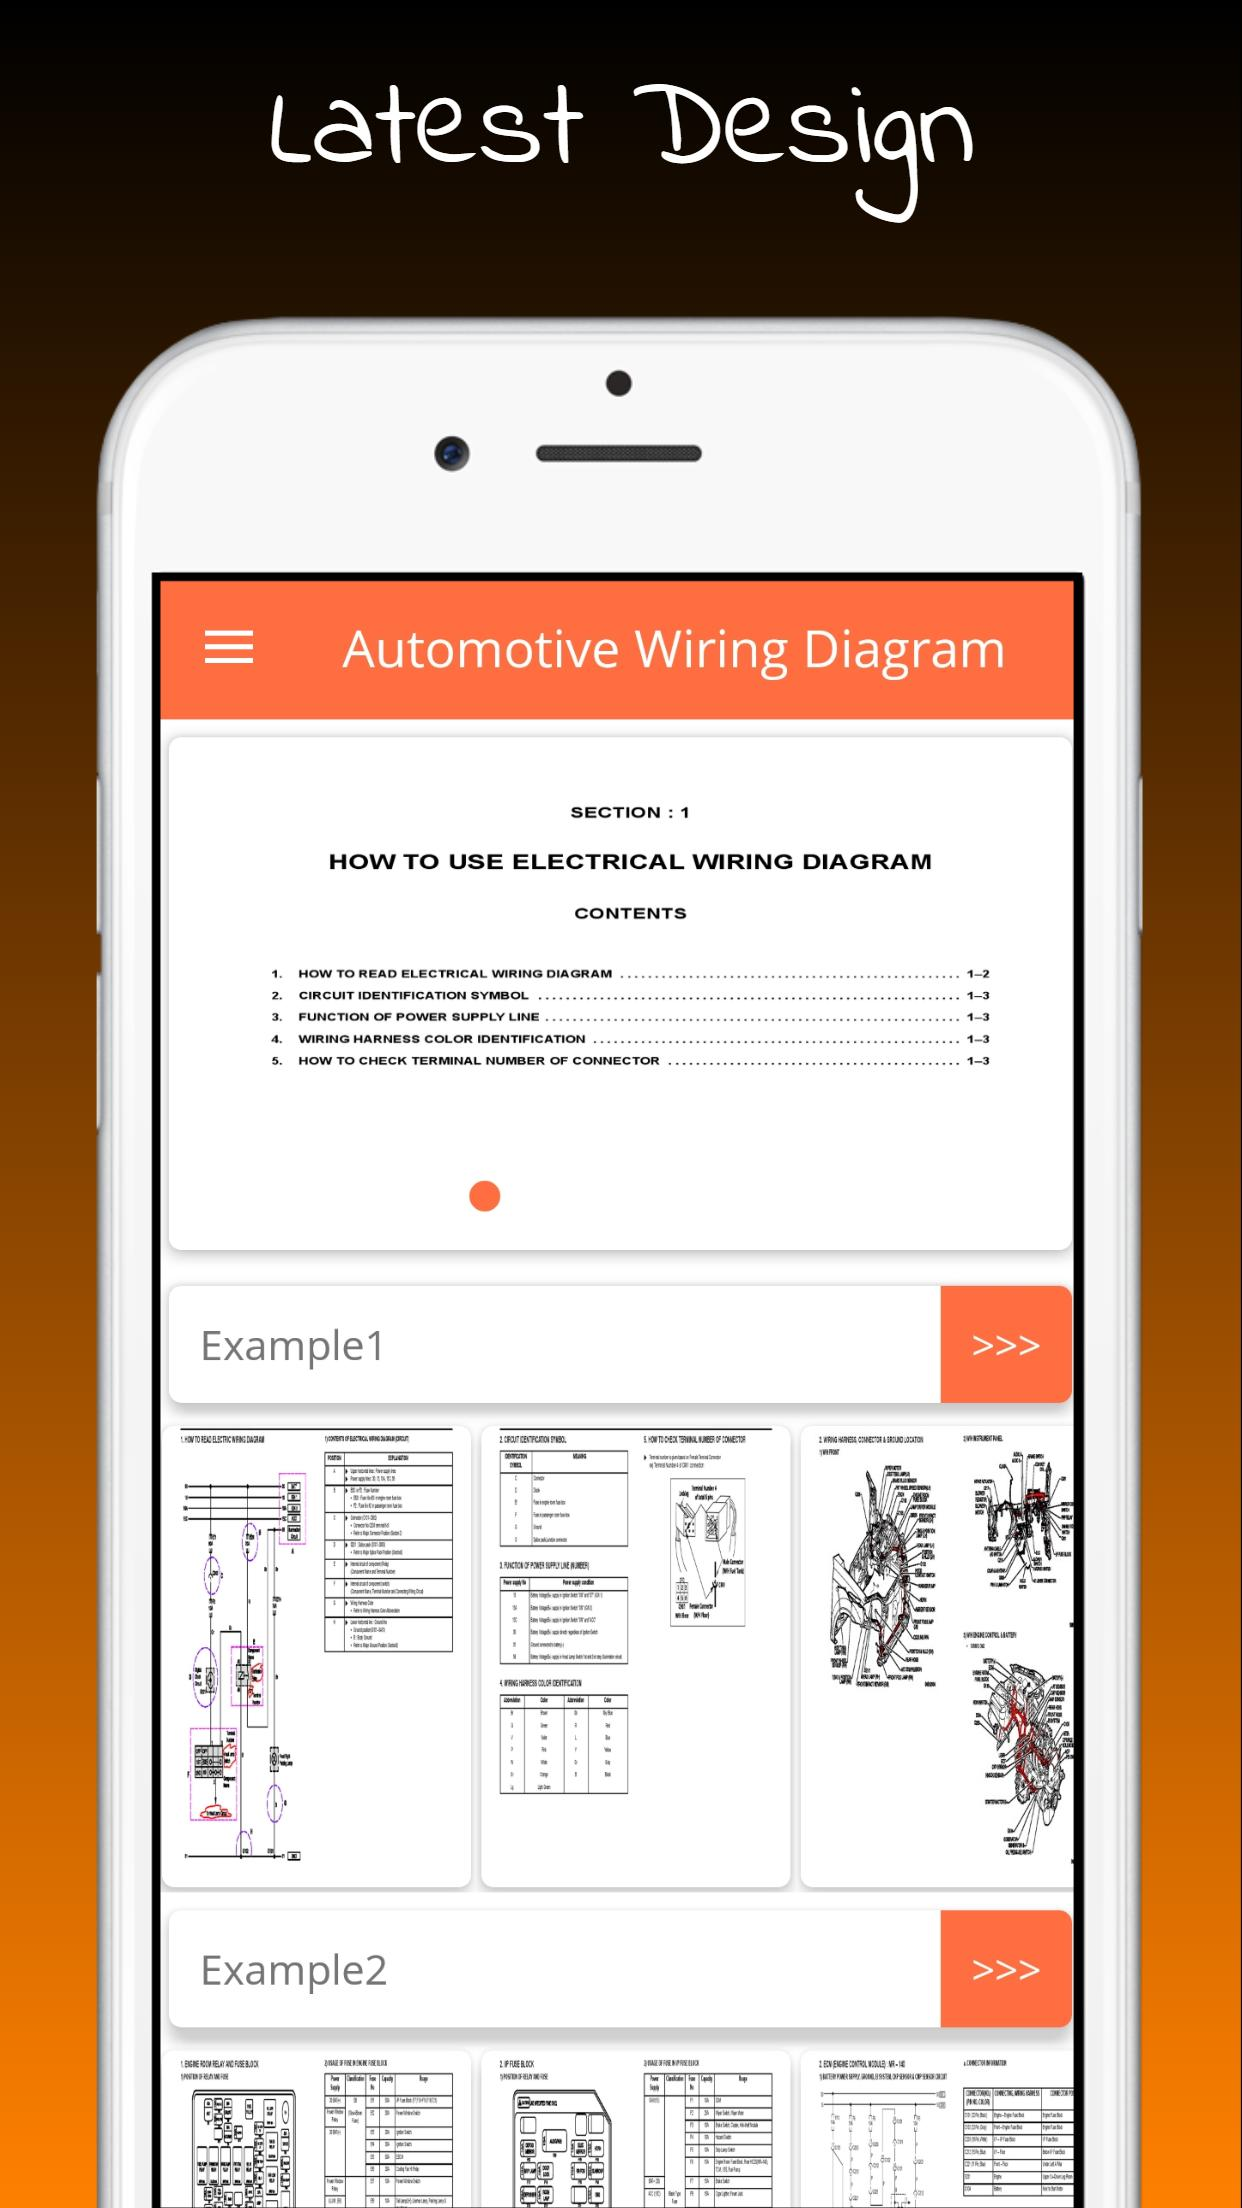 Automotive Wiring Diagram for Android - APK Download on electrical conduit, electrical schematics, electrical diagrams for houses, engine diagrams, hvac diagrams, electrical panels diagrams, kawasaki electrical diagrams, wire diagrams, electrical ladder diagrams, electrical power diagrams, electrical floor plans, electrical building diagrams, air conditioner diagrams, electrical landscaping lights, plumbing diagrams, electrical symbols, electrical blueprints, landscaping diagrams, electrical outlet, electrical math formulas,